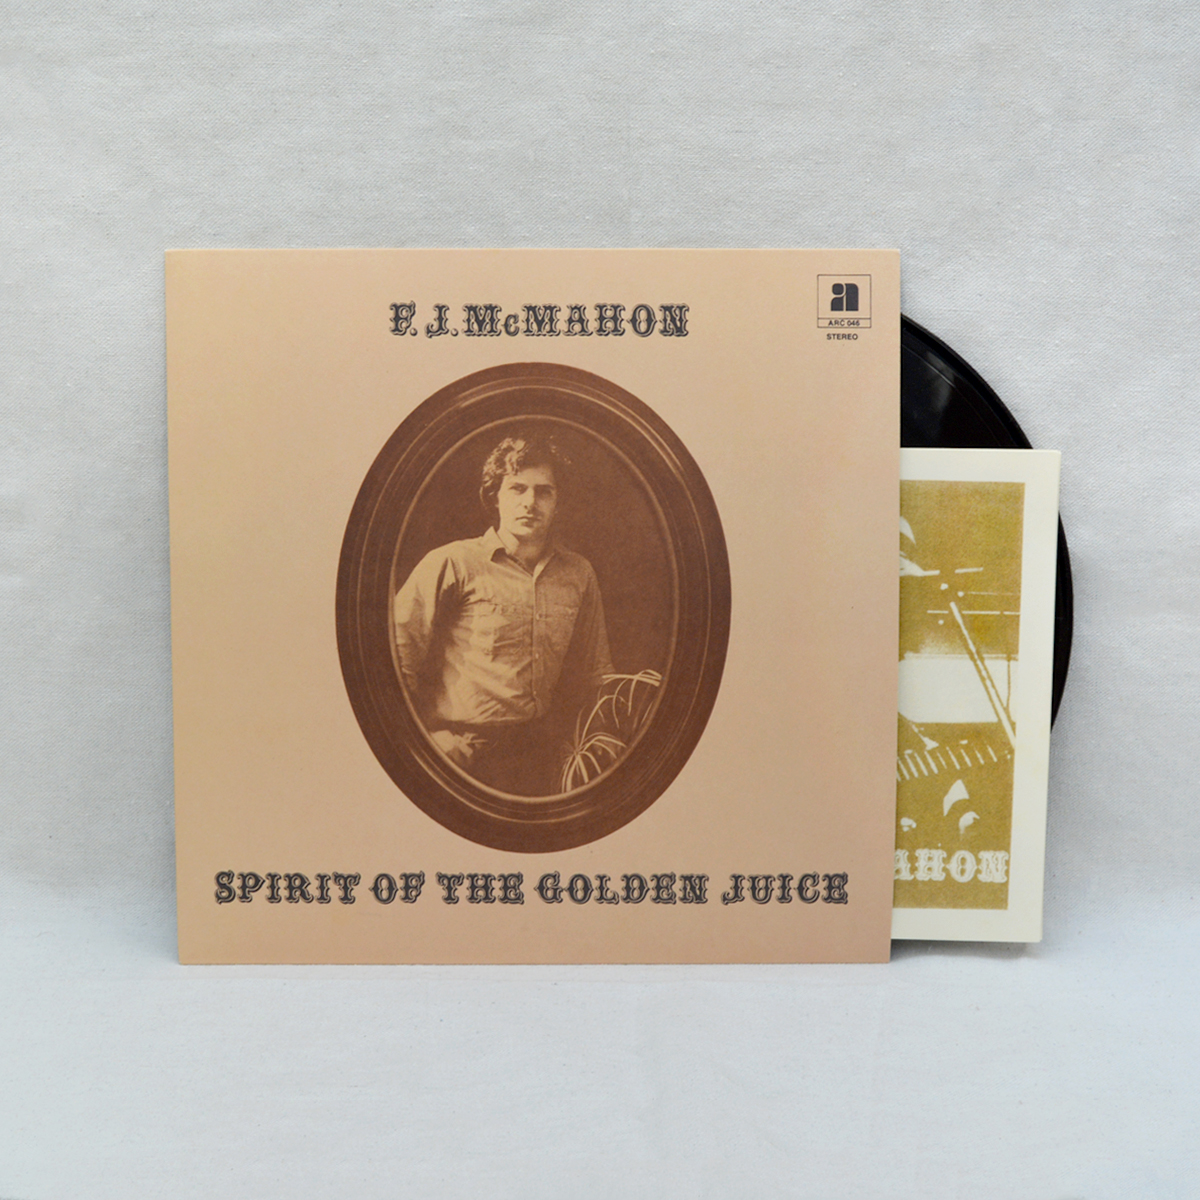 F.J. McMahon - Spirit of the Golden Juice album release